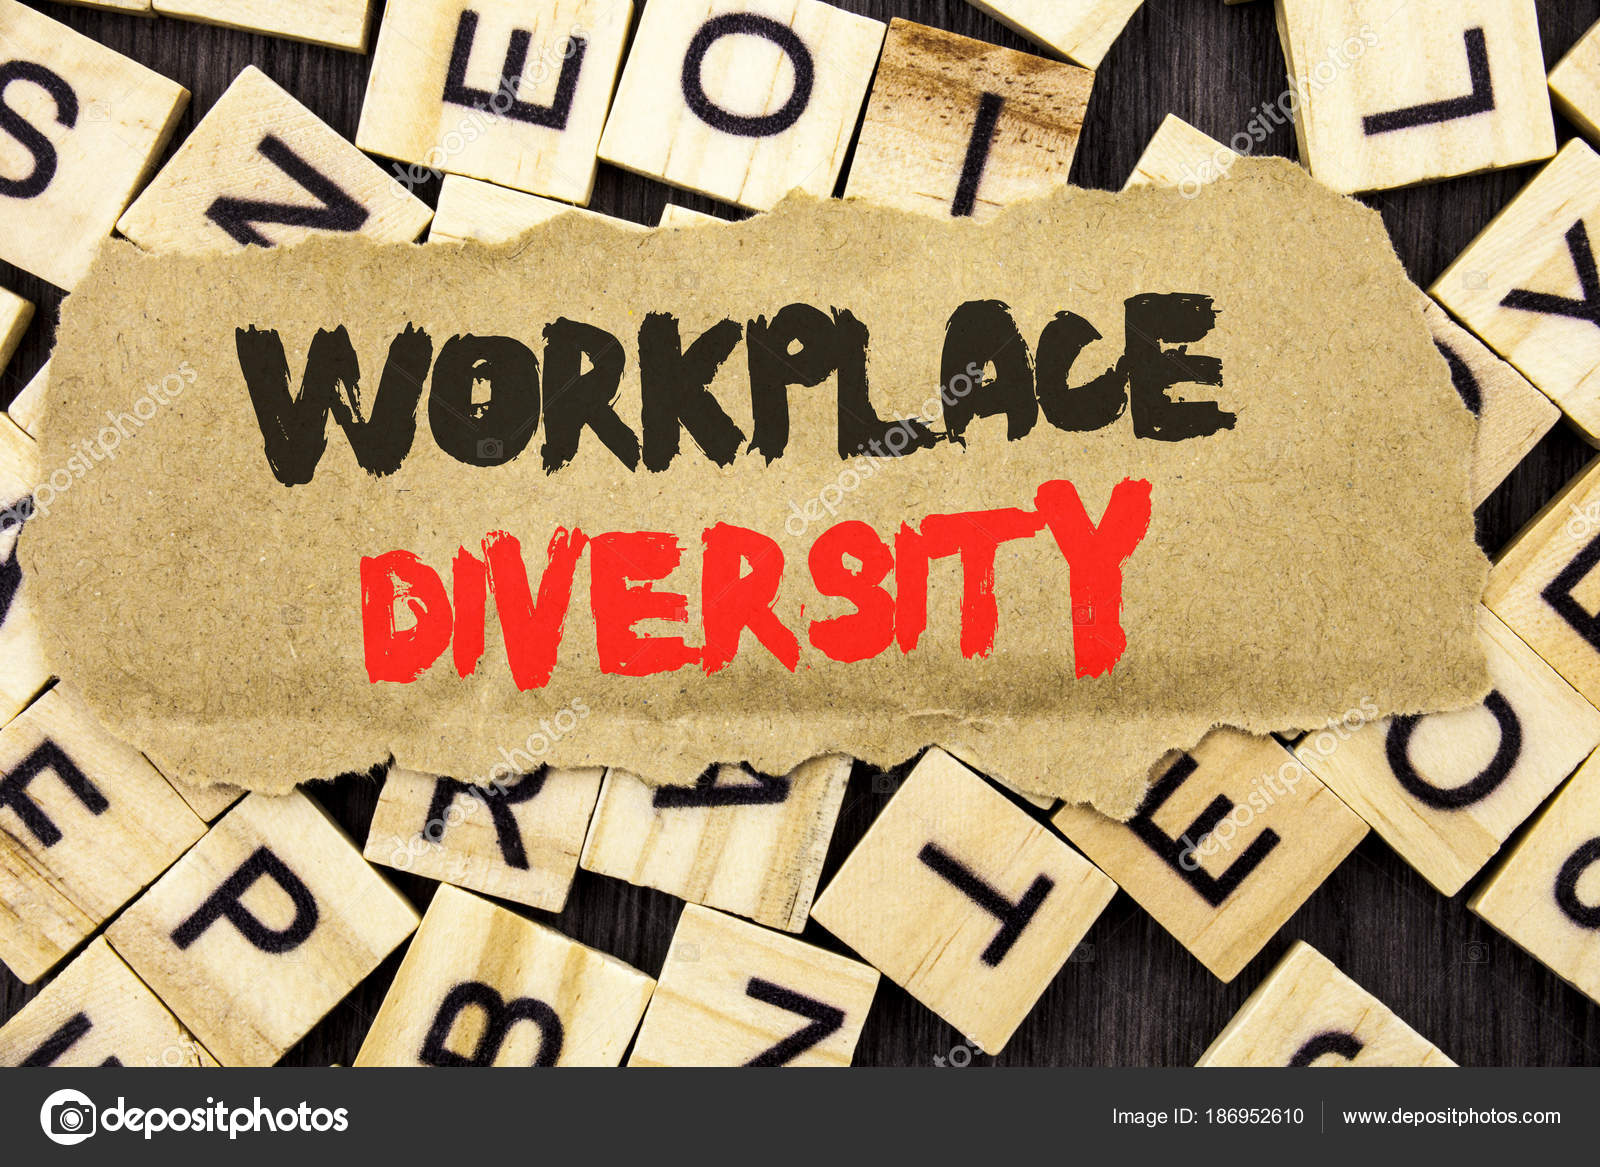 Diversity Meaning Workplace >> Handwriting Announcement Text Showing Workplace Diversity